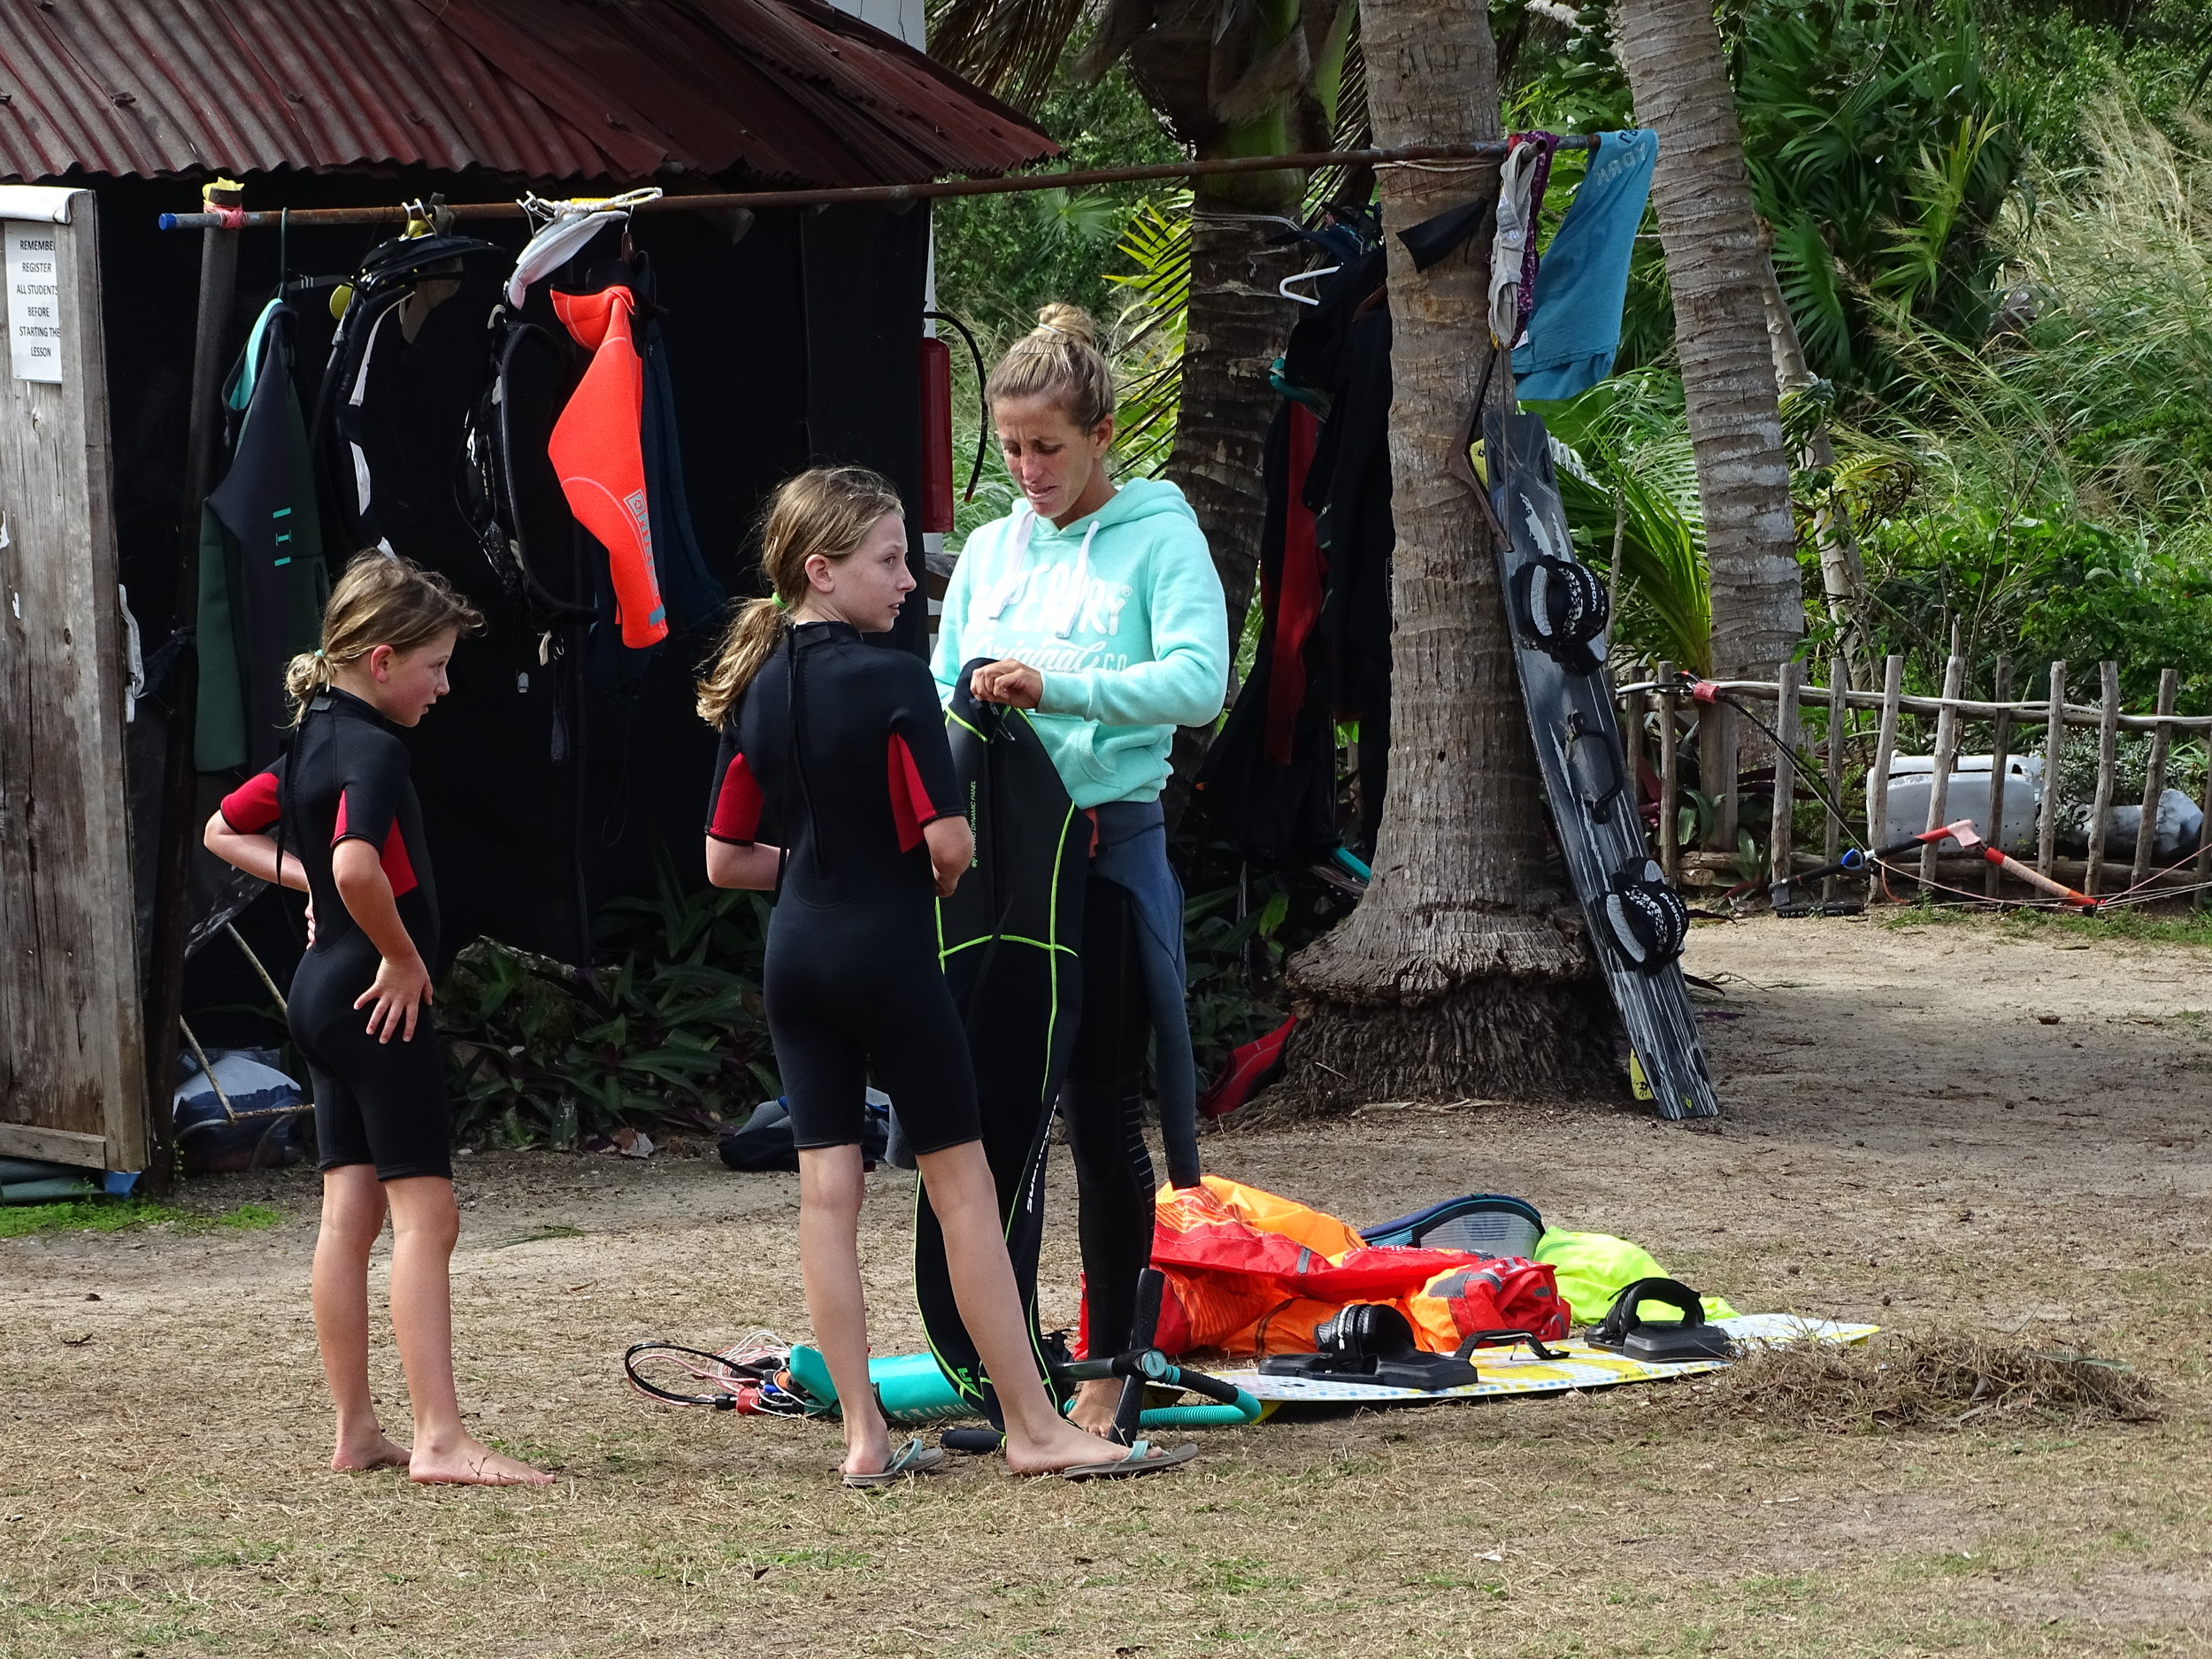 Getting their wetsuits on